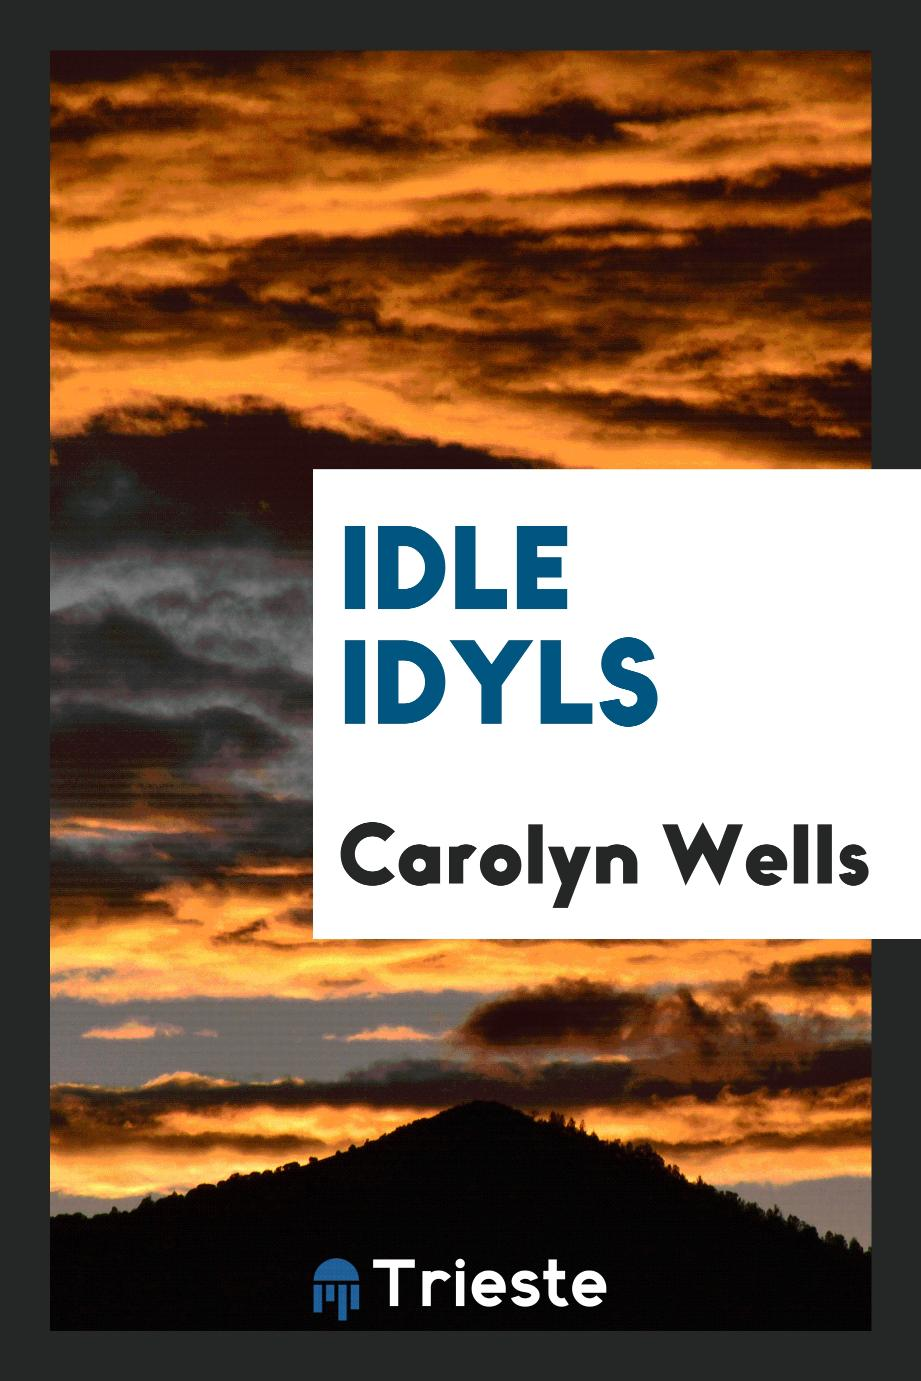 Carolyn Wells - Idle idyls